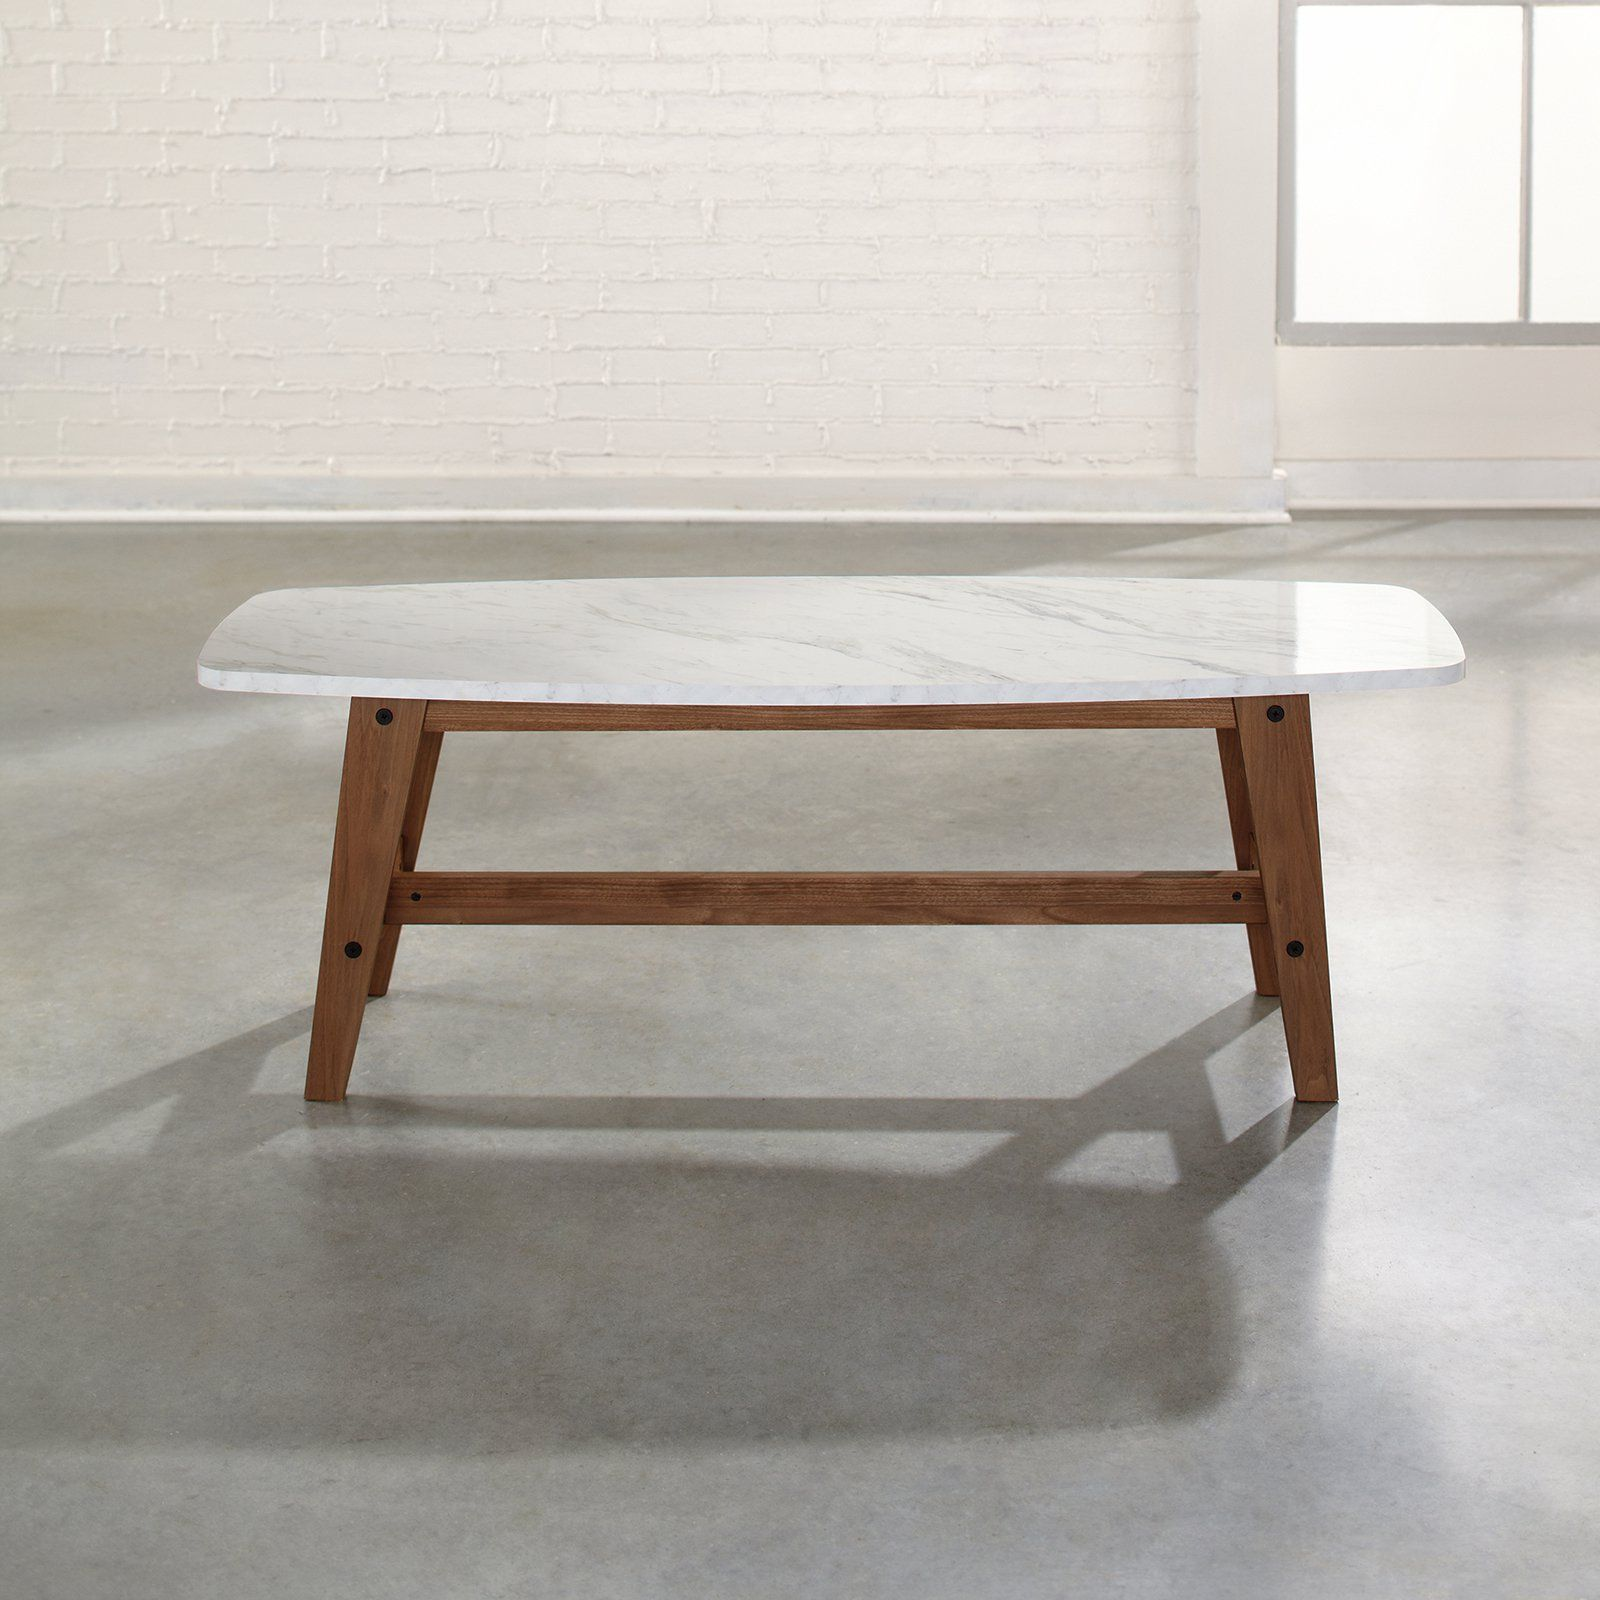 Sauder Soft Modern Coffee Table From Hayneedle Com Coffee Table Cheap Coffee Table Contemporary Coffee Table [ 1600 x 1600 Pixel ]